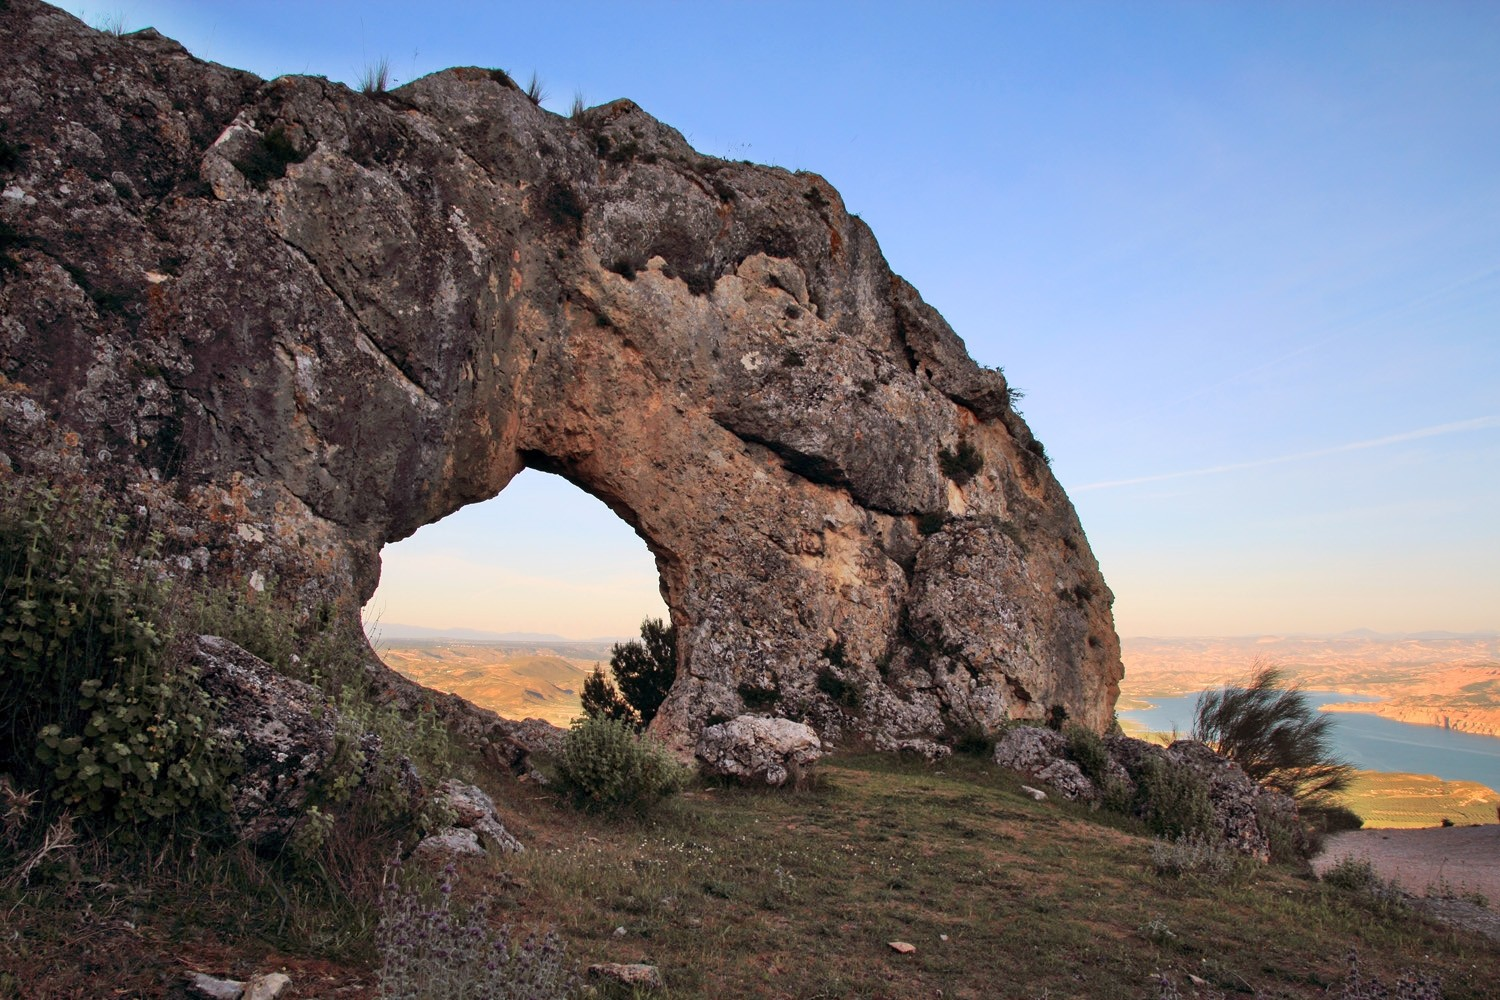 A Natural Arch on the Mountain Jabalcon